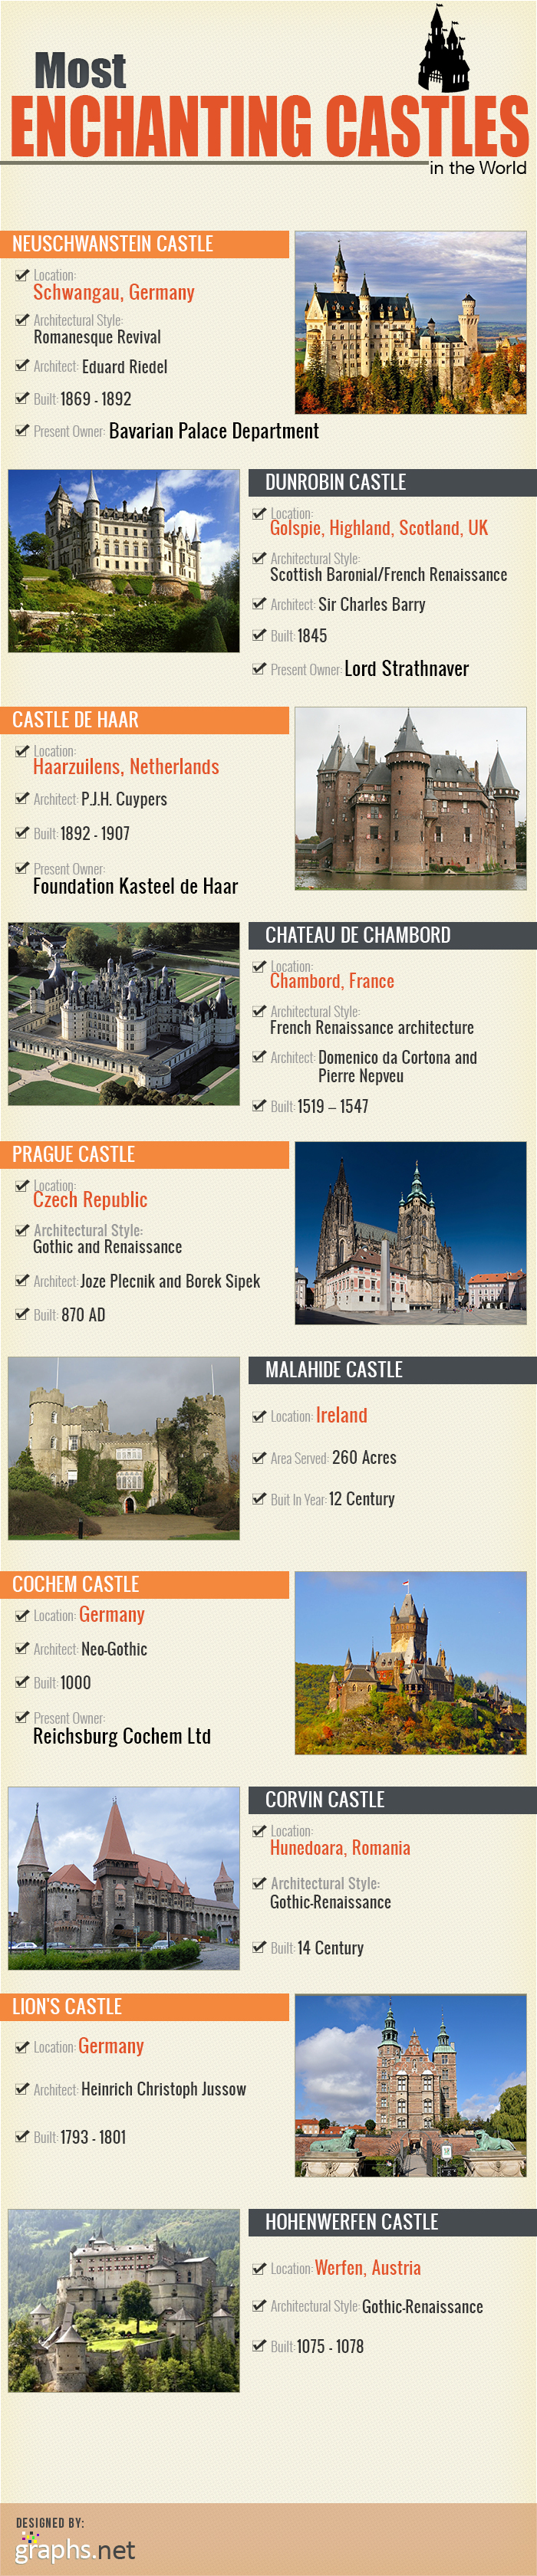 Most Enchanting Castles in the World